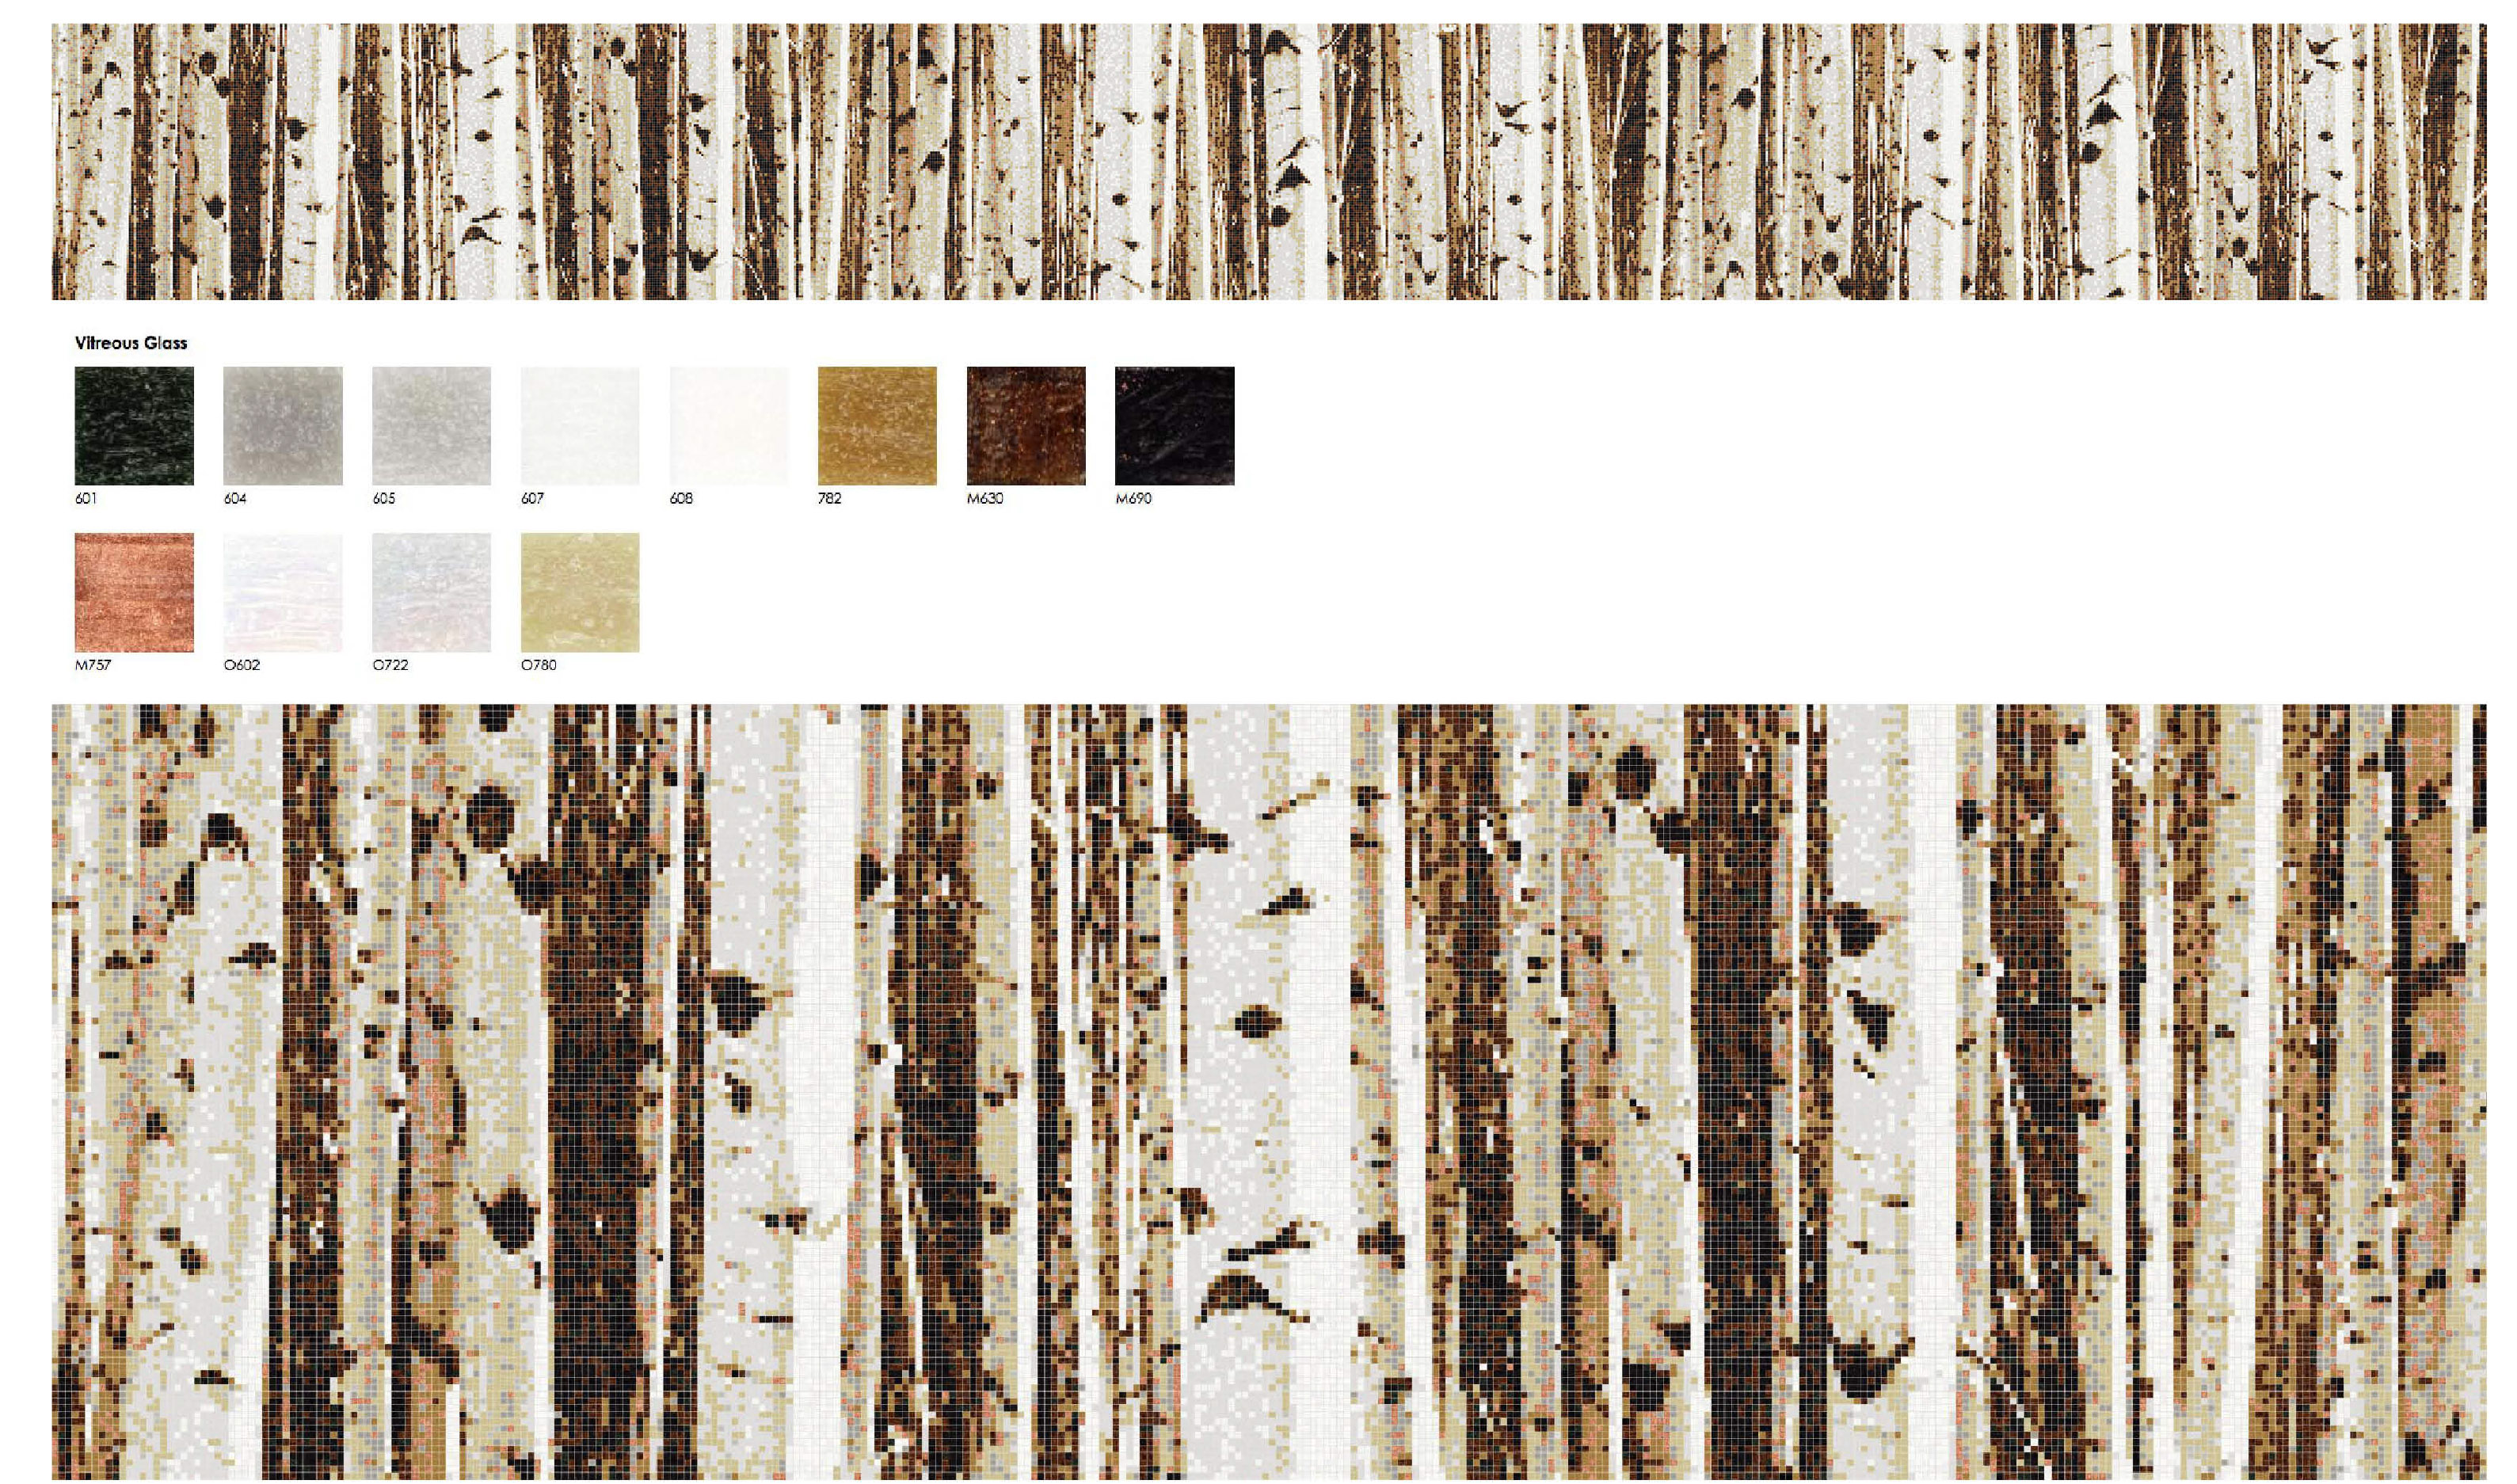 01161076 Cliff Lodge ballroom Aspen Naturally Refine Mosaic birch trees mosaic rendering